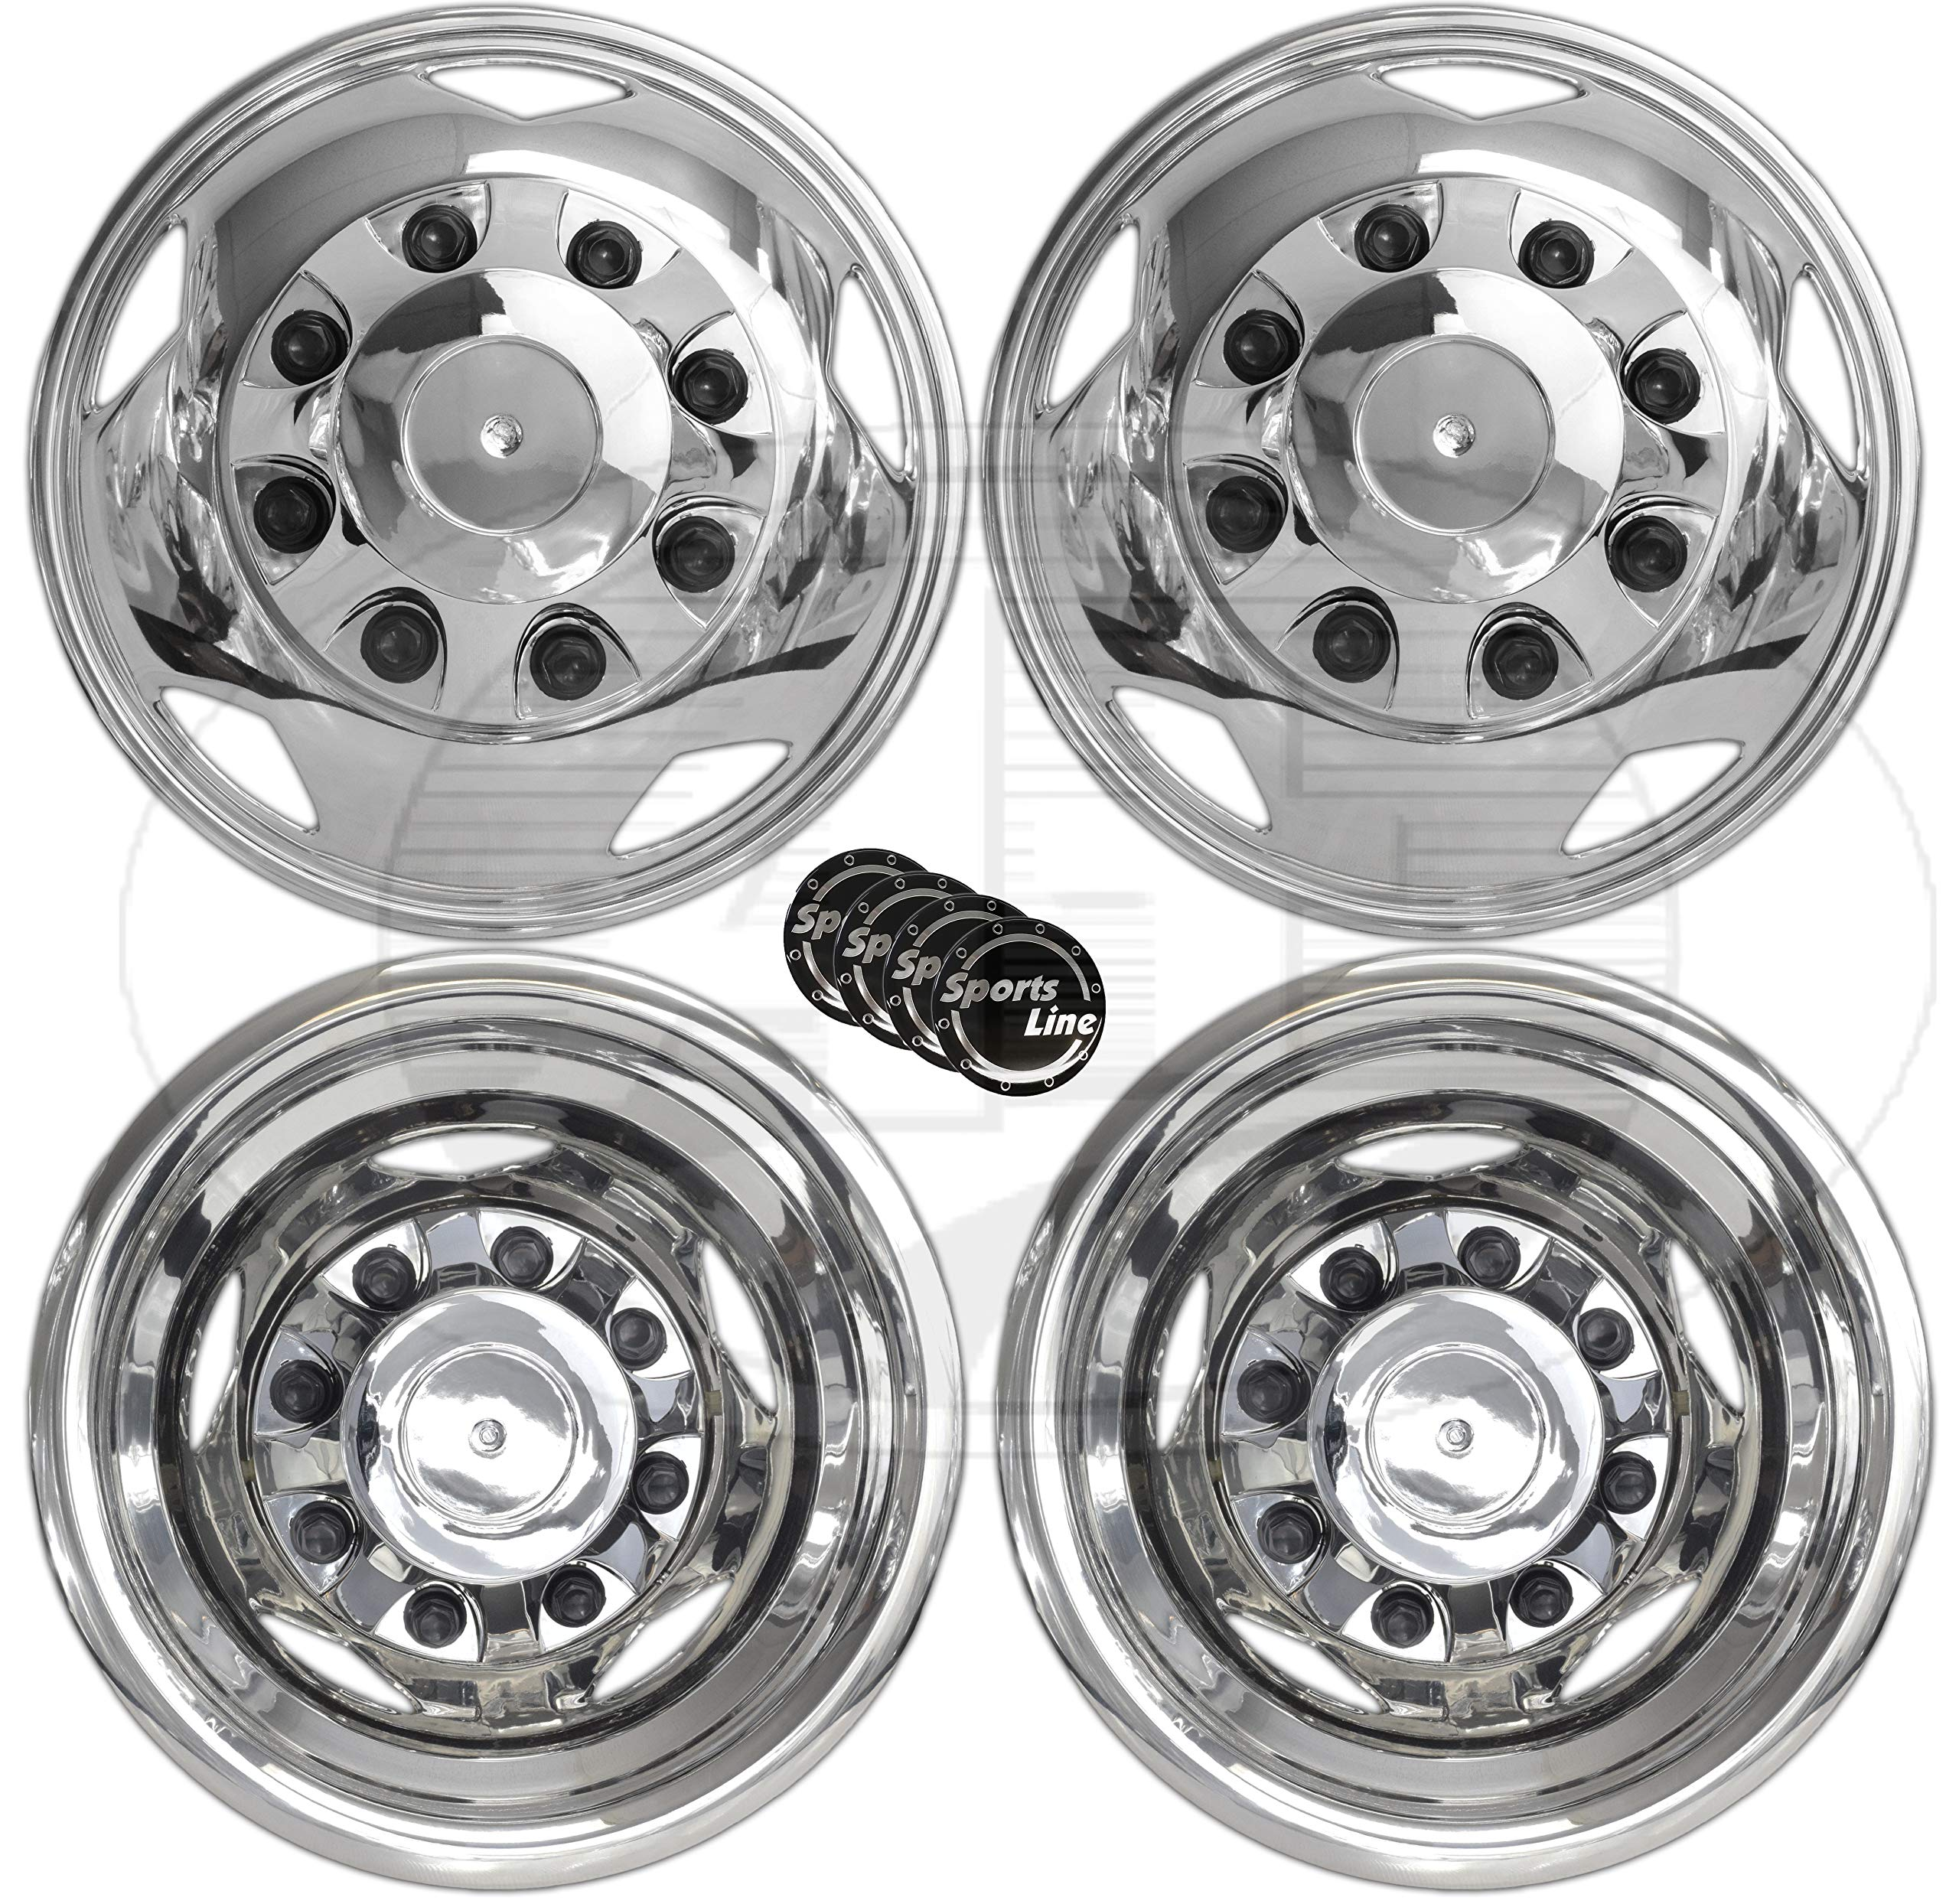 Truck Accessories Best for Pick-up Trucks Hub Caps Rim Skin Chrome Cover Parts Pack of 4 304L Stainless Steel 17 Inch Wheels Simulator OxGord Wheel Simulators 17 Dually for 03-19 Dodge Ram 3500